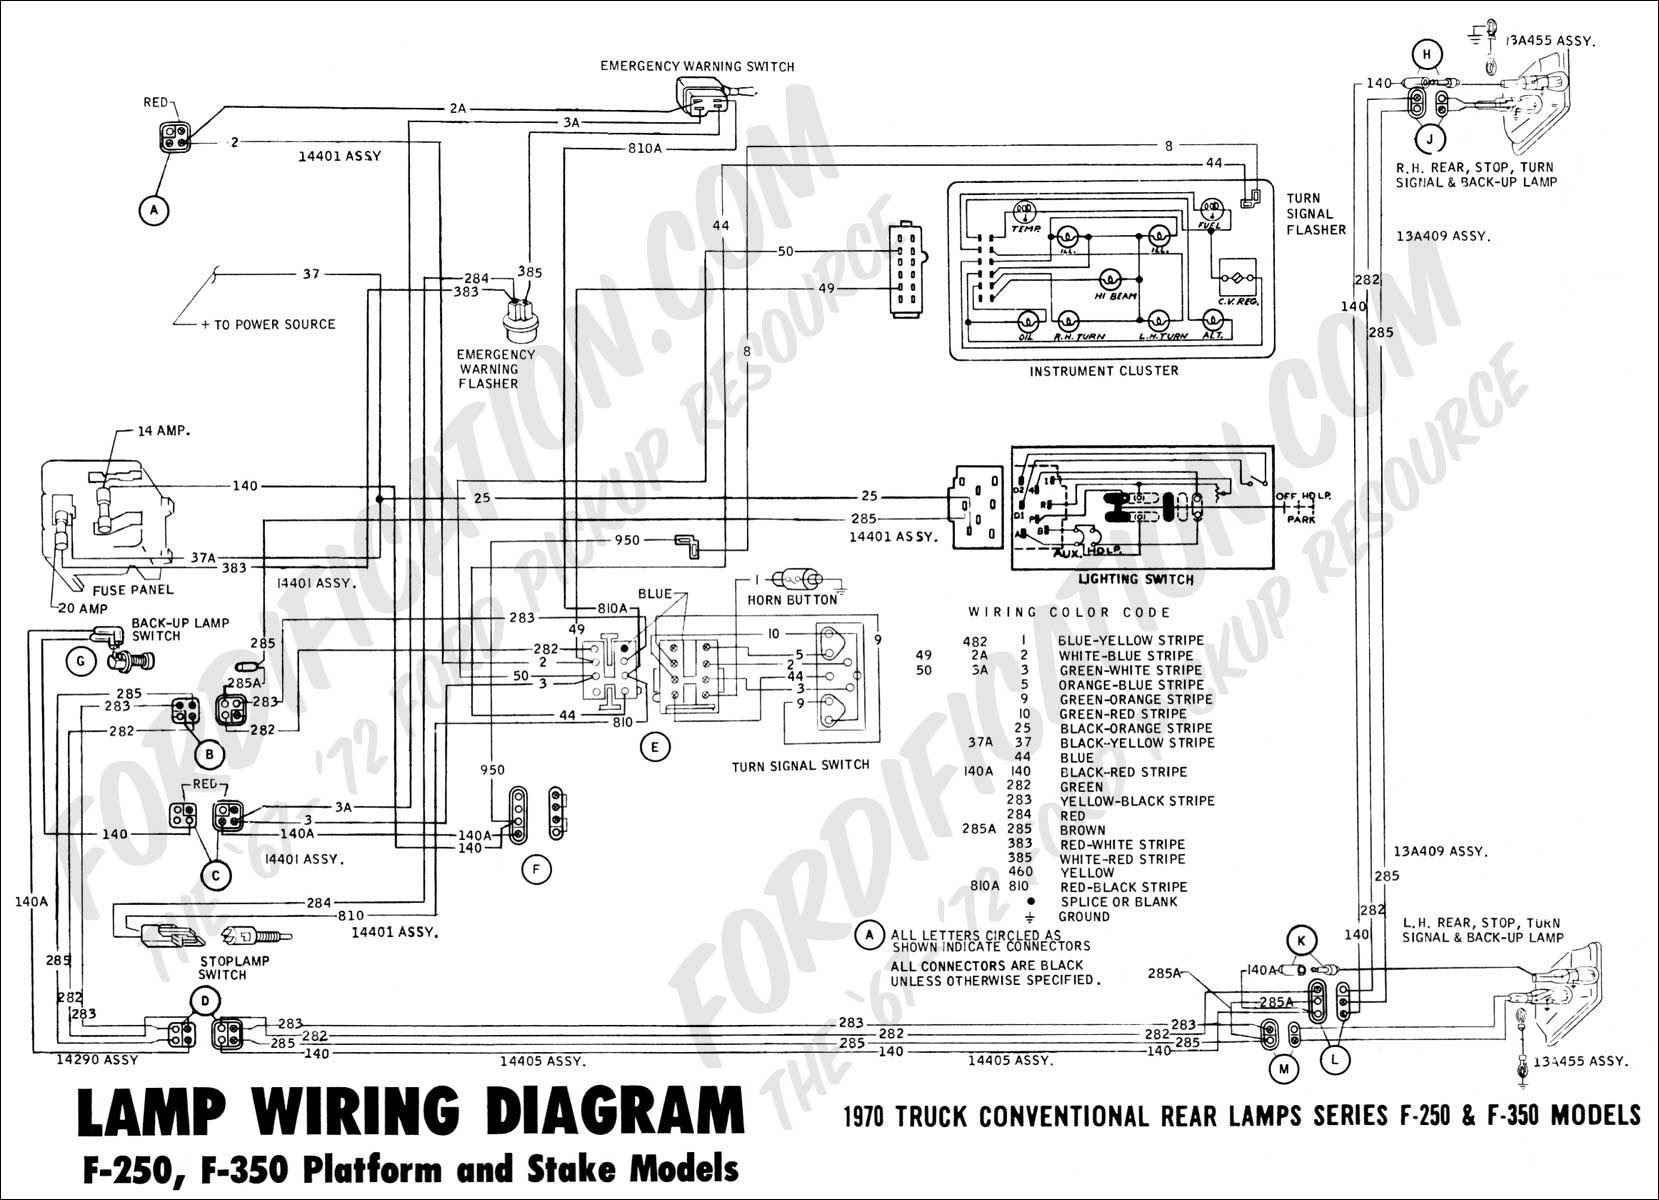 99 ford f 350 rear wiring schematic - diagram wiring club last-mutter -  last-mutter.pavimentazionisgarbossavicenza.it  pavimentazionisgarbossavicenza.it